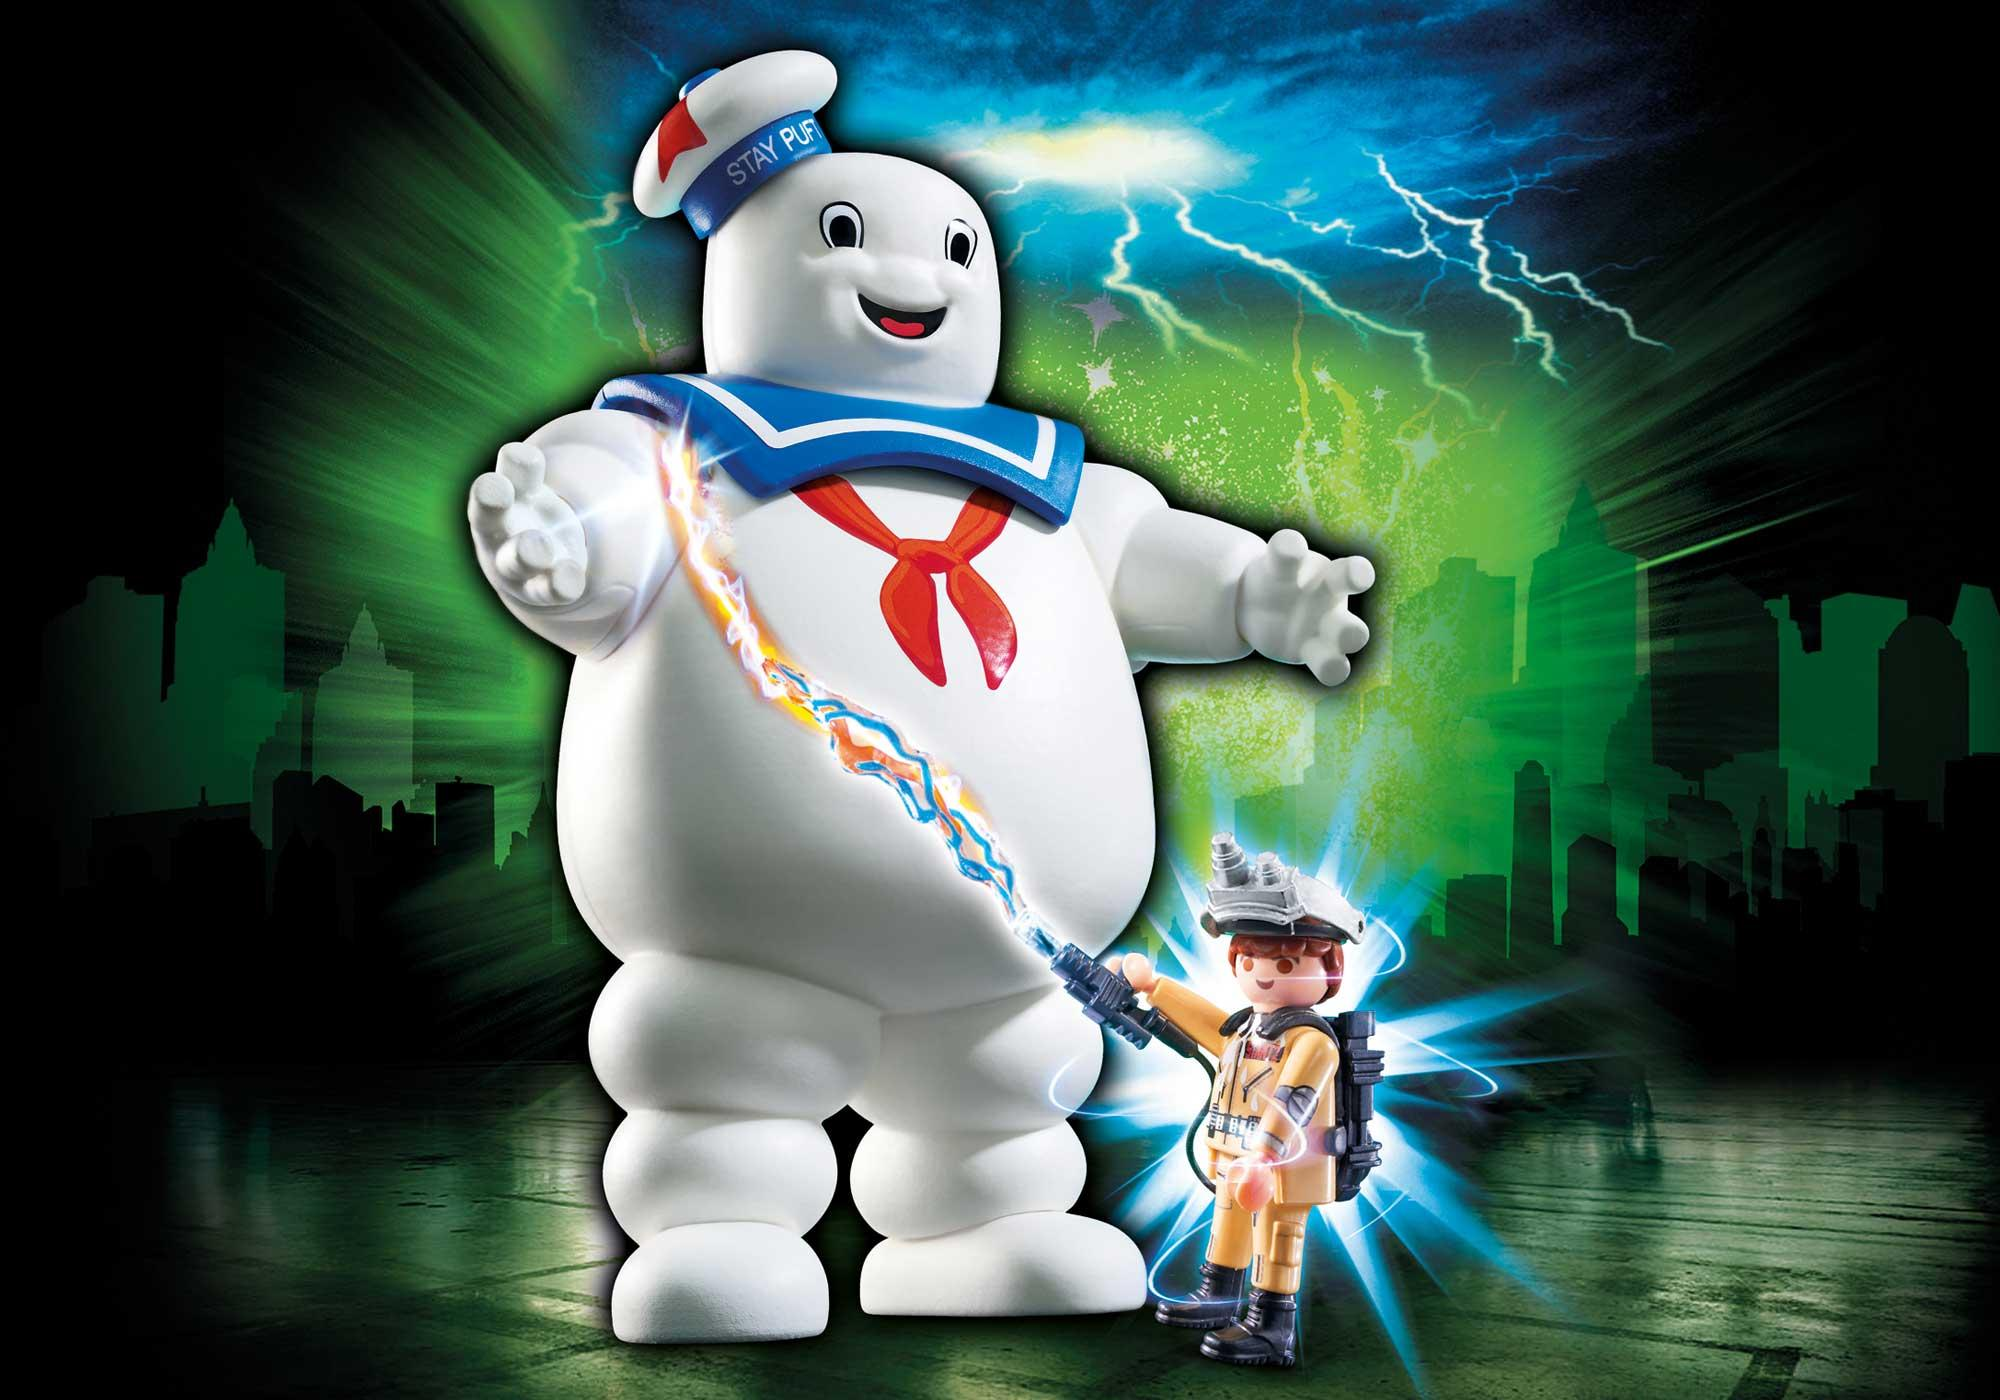 Stay Puft Marshmallow Man Item Number: 9221 4 exclusive Ghostbusters(TM)-Episodes for all ghost hunters on purchase of a ghostbusters(TM) item $19.99  free shipping with Ghostbuster Ray Stantz. Marshmallow Man dimensions: 16 x 8.5 x 19 cm (LxDxH).  Add to Cart   He may look fluffy and cute, but Stay Puft is ready to scare the city! With movable arms, there is no stopping him as he stomps along the streets. Stand back as Ghostbuster Ray Stantz uses his proton pack on the larger-than-life ghost and covers the city in marshmallow! Set also includes Ecto-Goggles and other accessories. Recommended for ages six years and up. Stay Puft Dimensions: 6.3 x 3.3 x 7.5 in (LxWxH).Warning. Choking Hazard. Small parts. Not for children under 3 years. Ghostbusters™ & © 2017 Columbia Pictures Industries, Inc. All rights reserved Dimensions (LxWxH) in: 6.3 x 3.3 x 7.5 Recommended for ages 6 and up. Warning